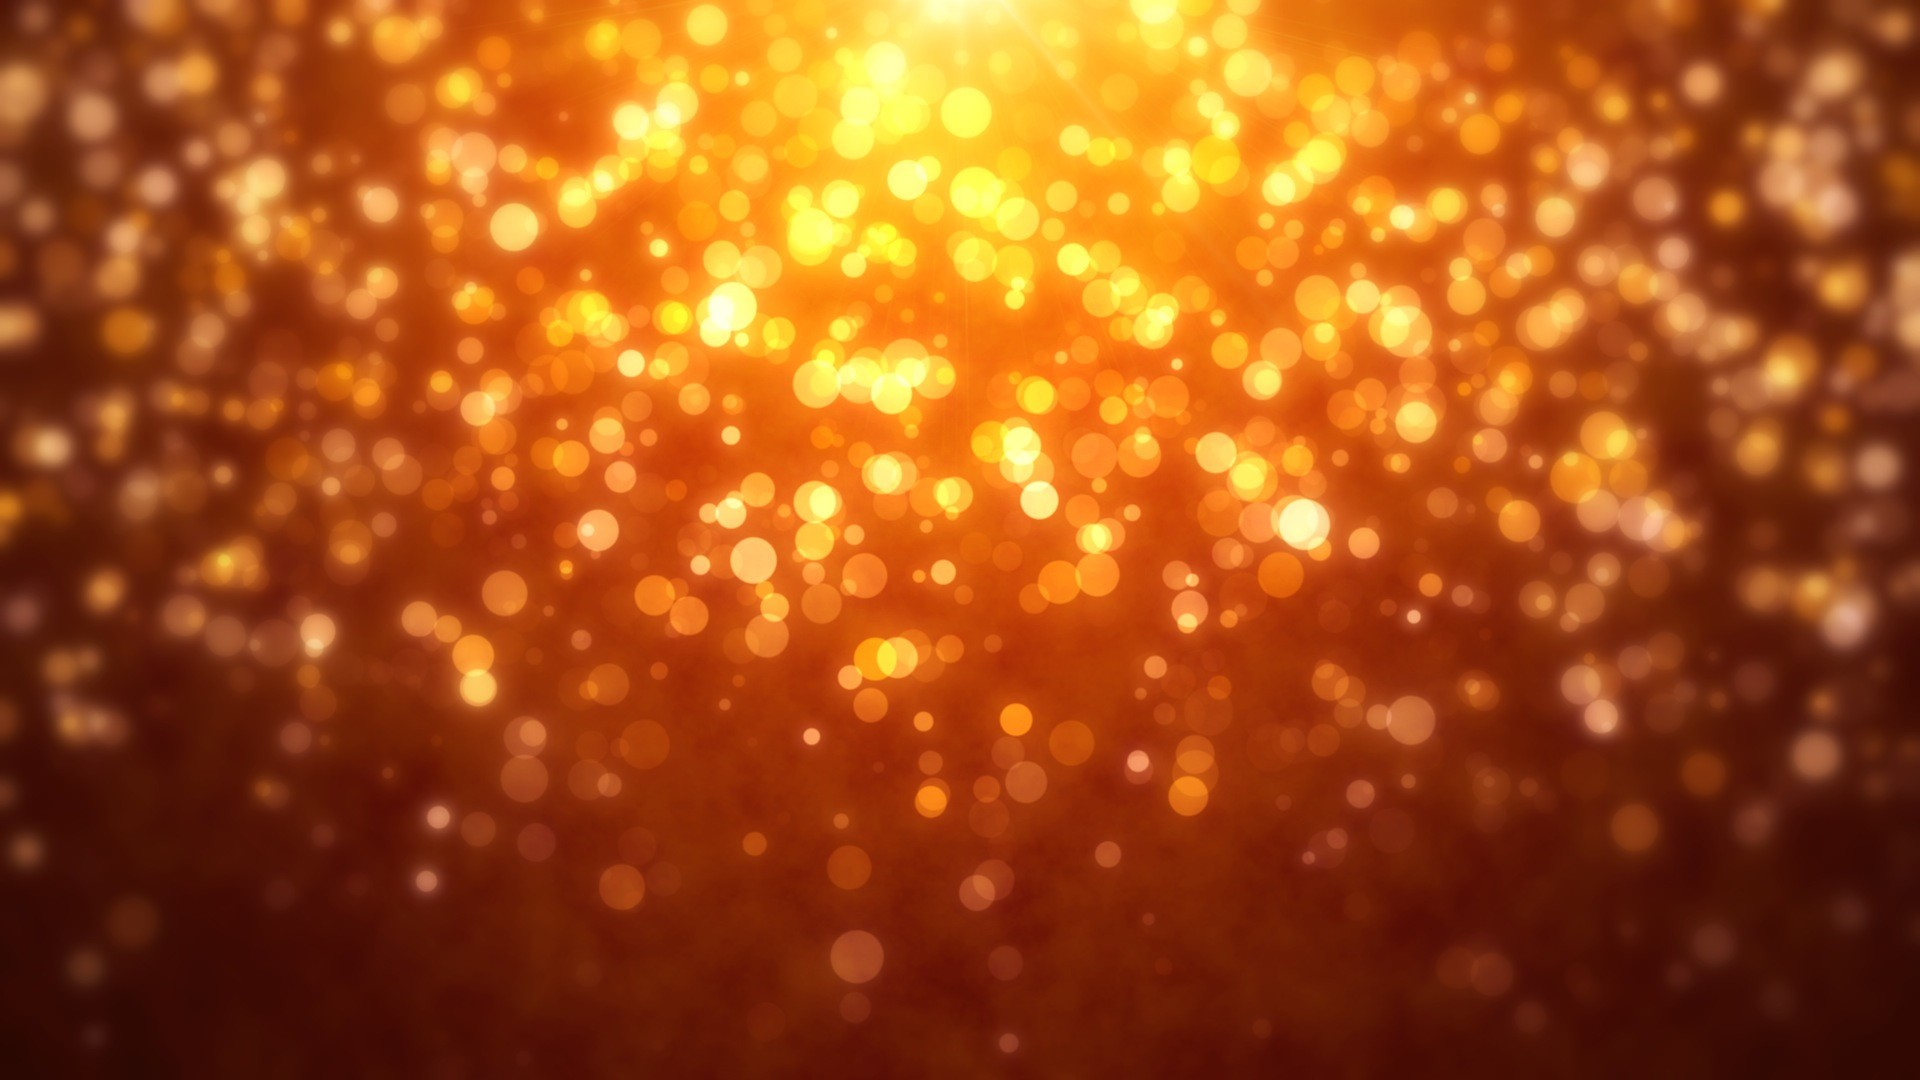 Gold And Red Wallpaper 47 Images